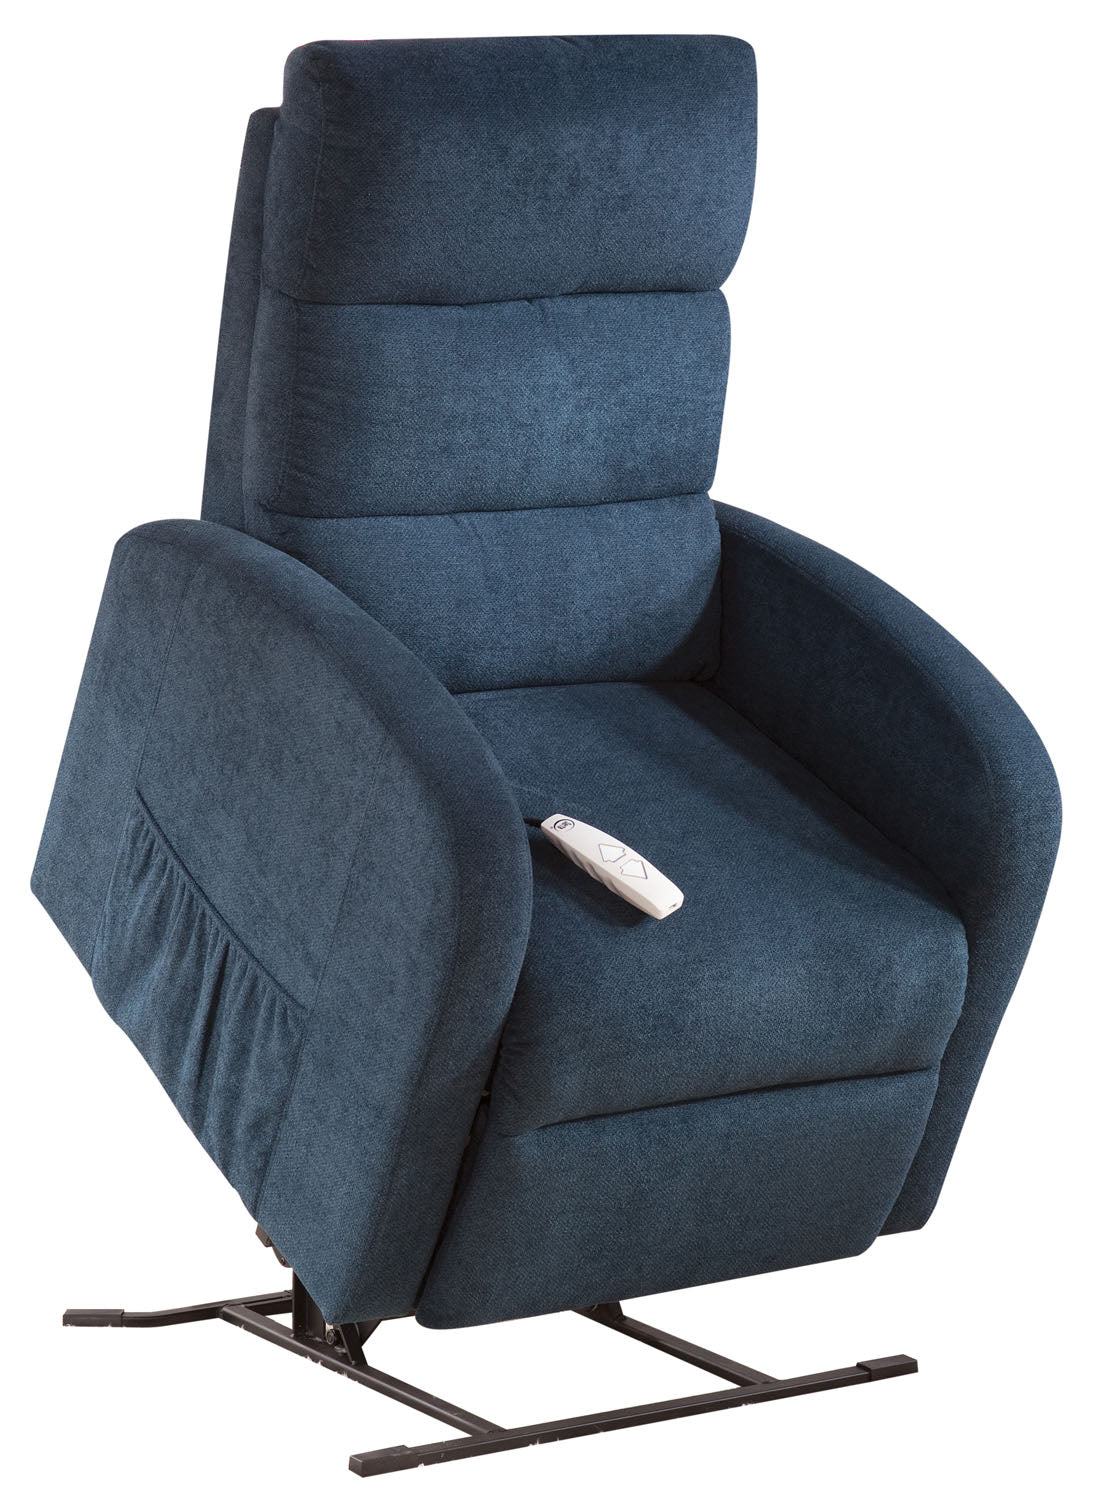 Amazing Comfortlift Alabama Lift Chair Reclining Loveseat Gamerscity Chair Design For Home Gamerscityorg